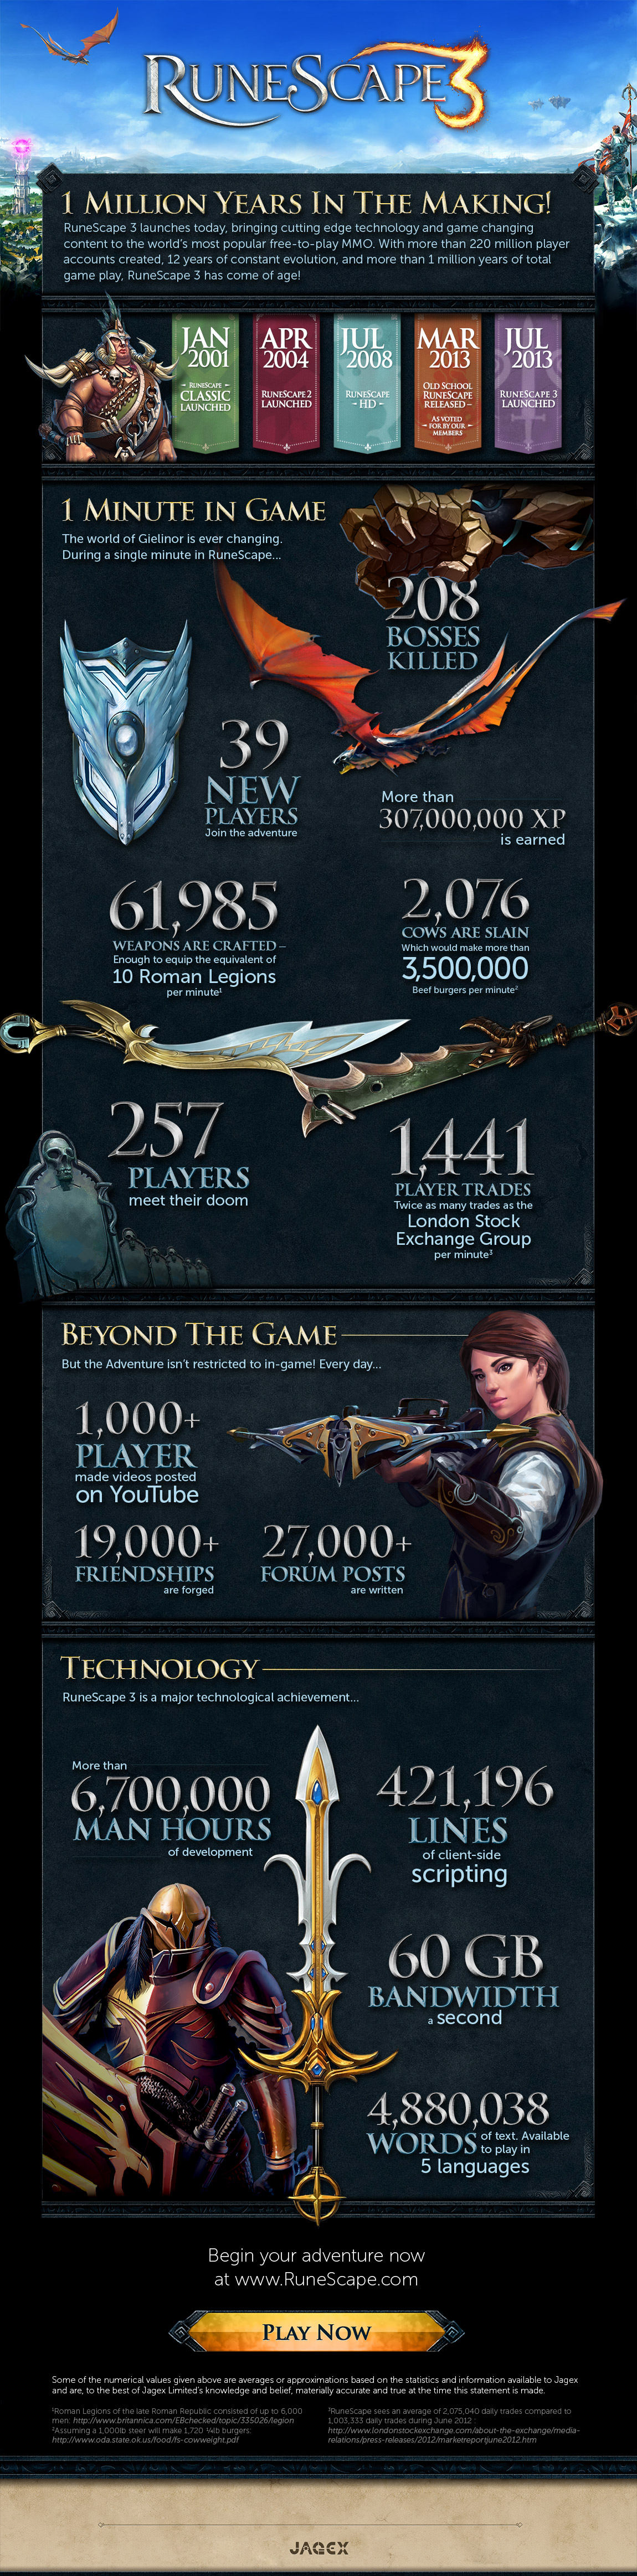 RuneScape Infographic: 1 million years of game play